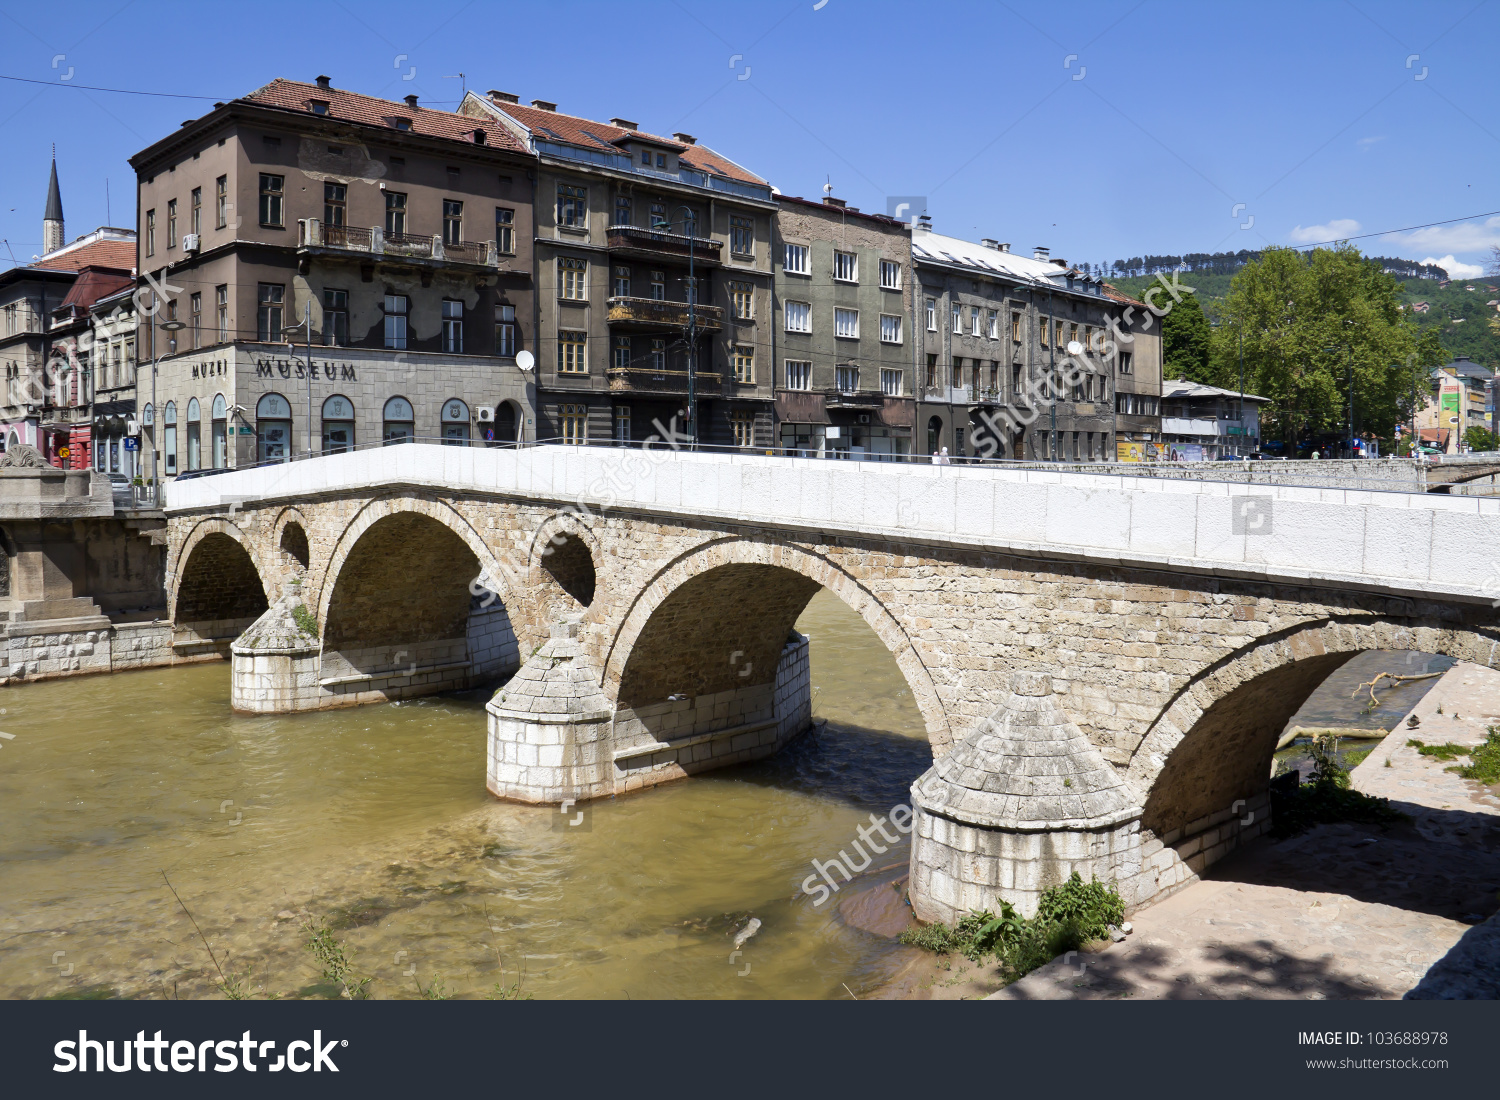 Bridge On Miljacka River In Sarajevo The Capital City Of Bosnia.